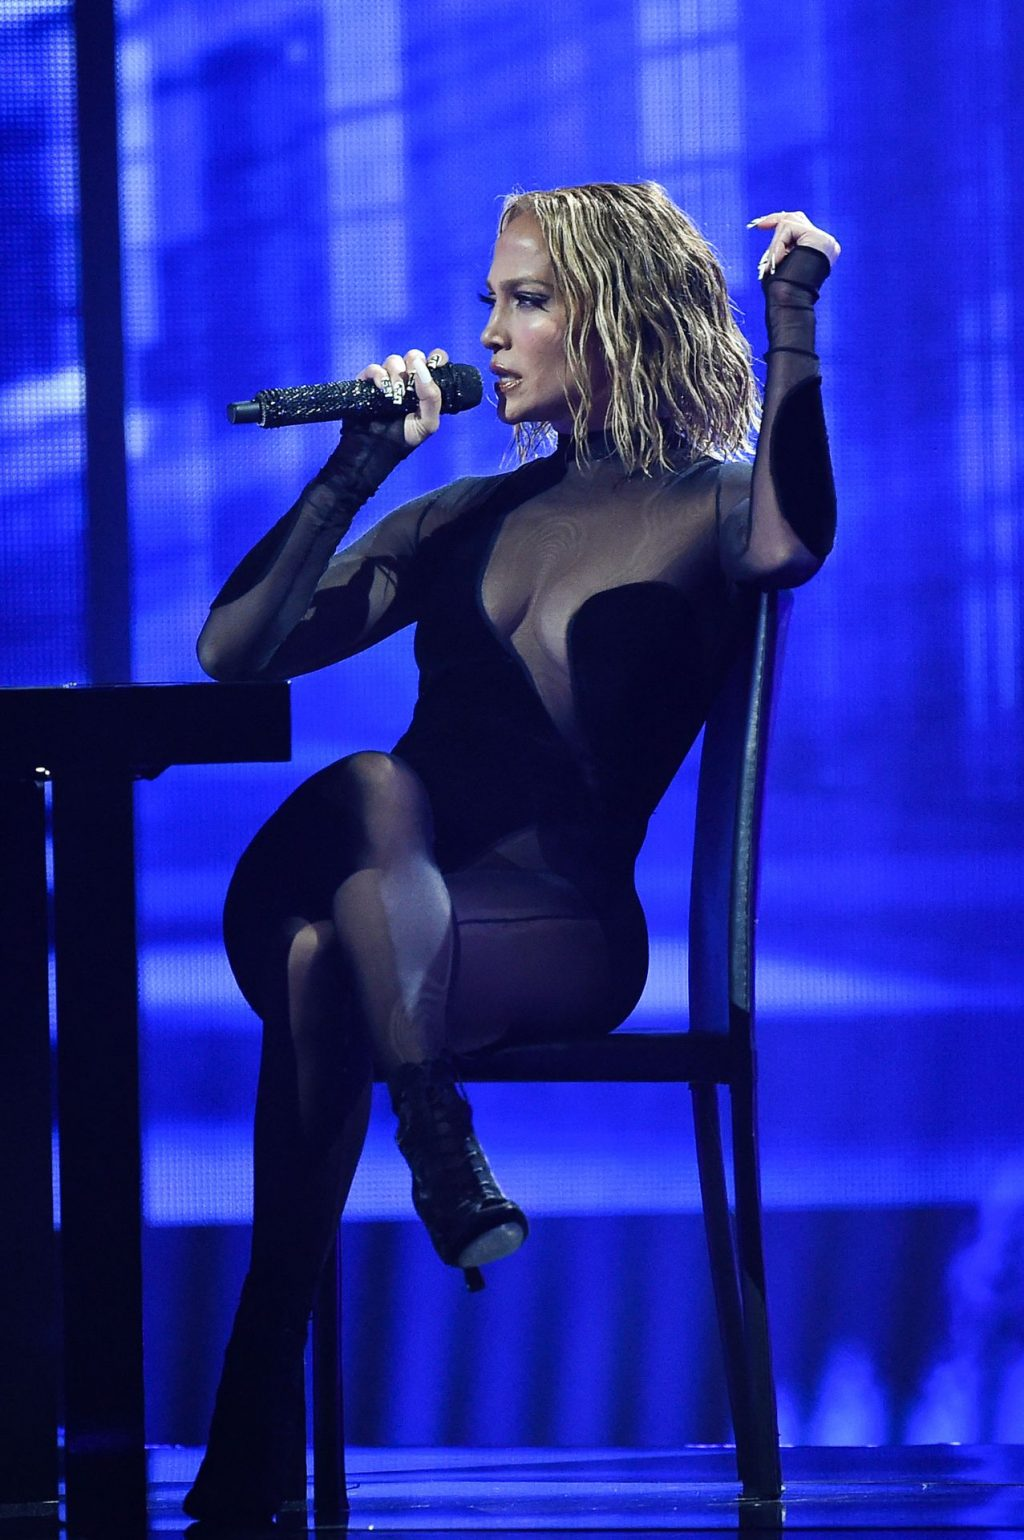 JLo Displays Her Boobs at the 2020 American Music Awards (46 Photos)